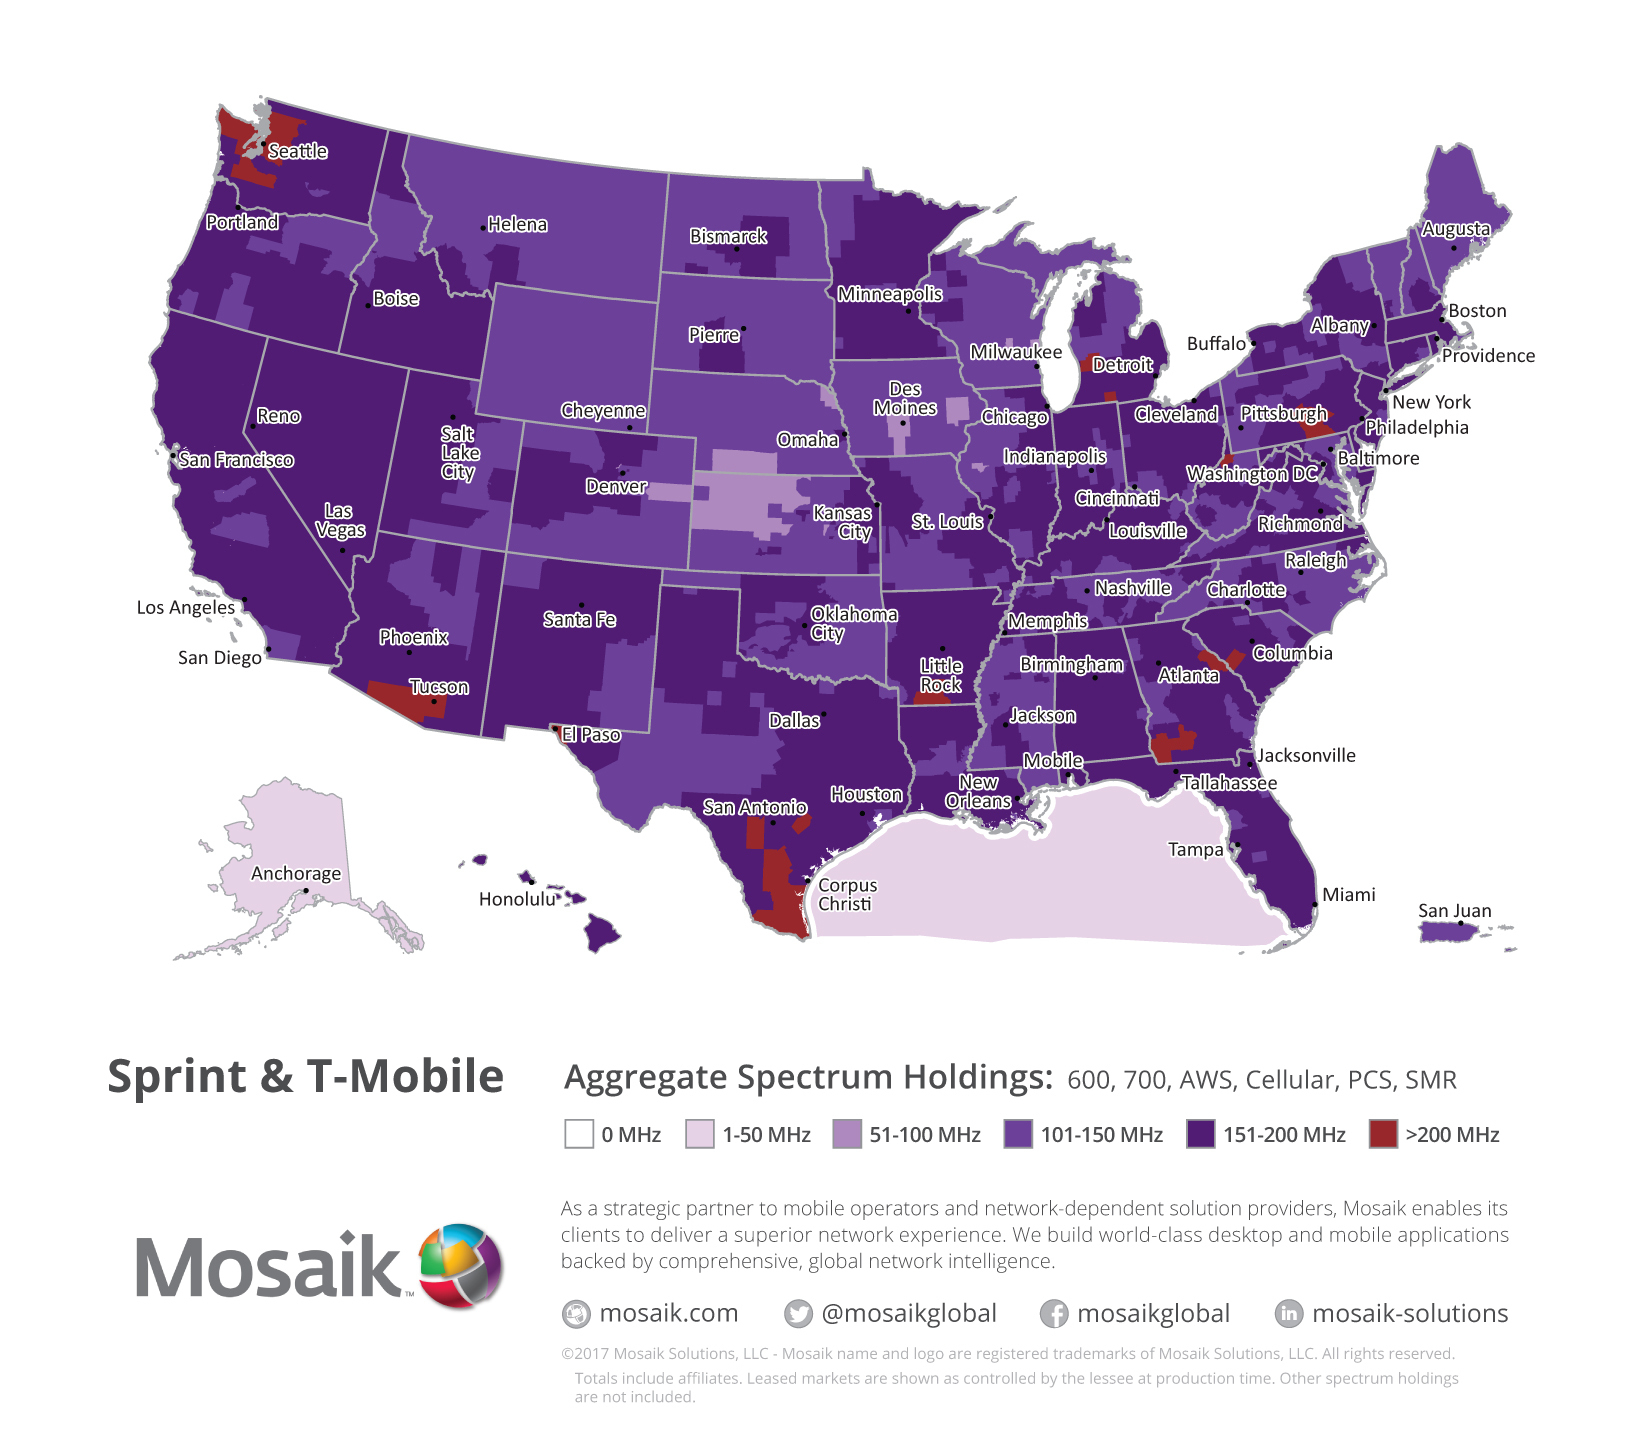 Mosaik Maps Leveraged To Visualize Merged Sprint/t-Mobile Network - Spectrum Coverage Map Florida